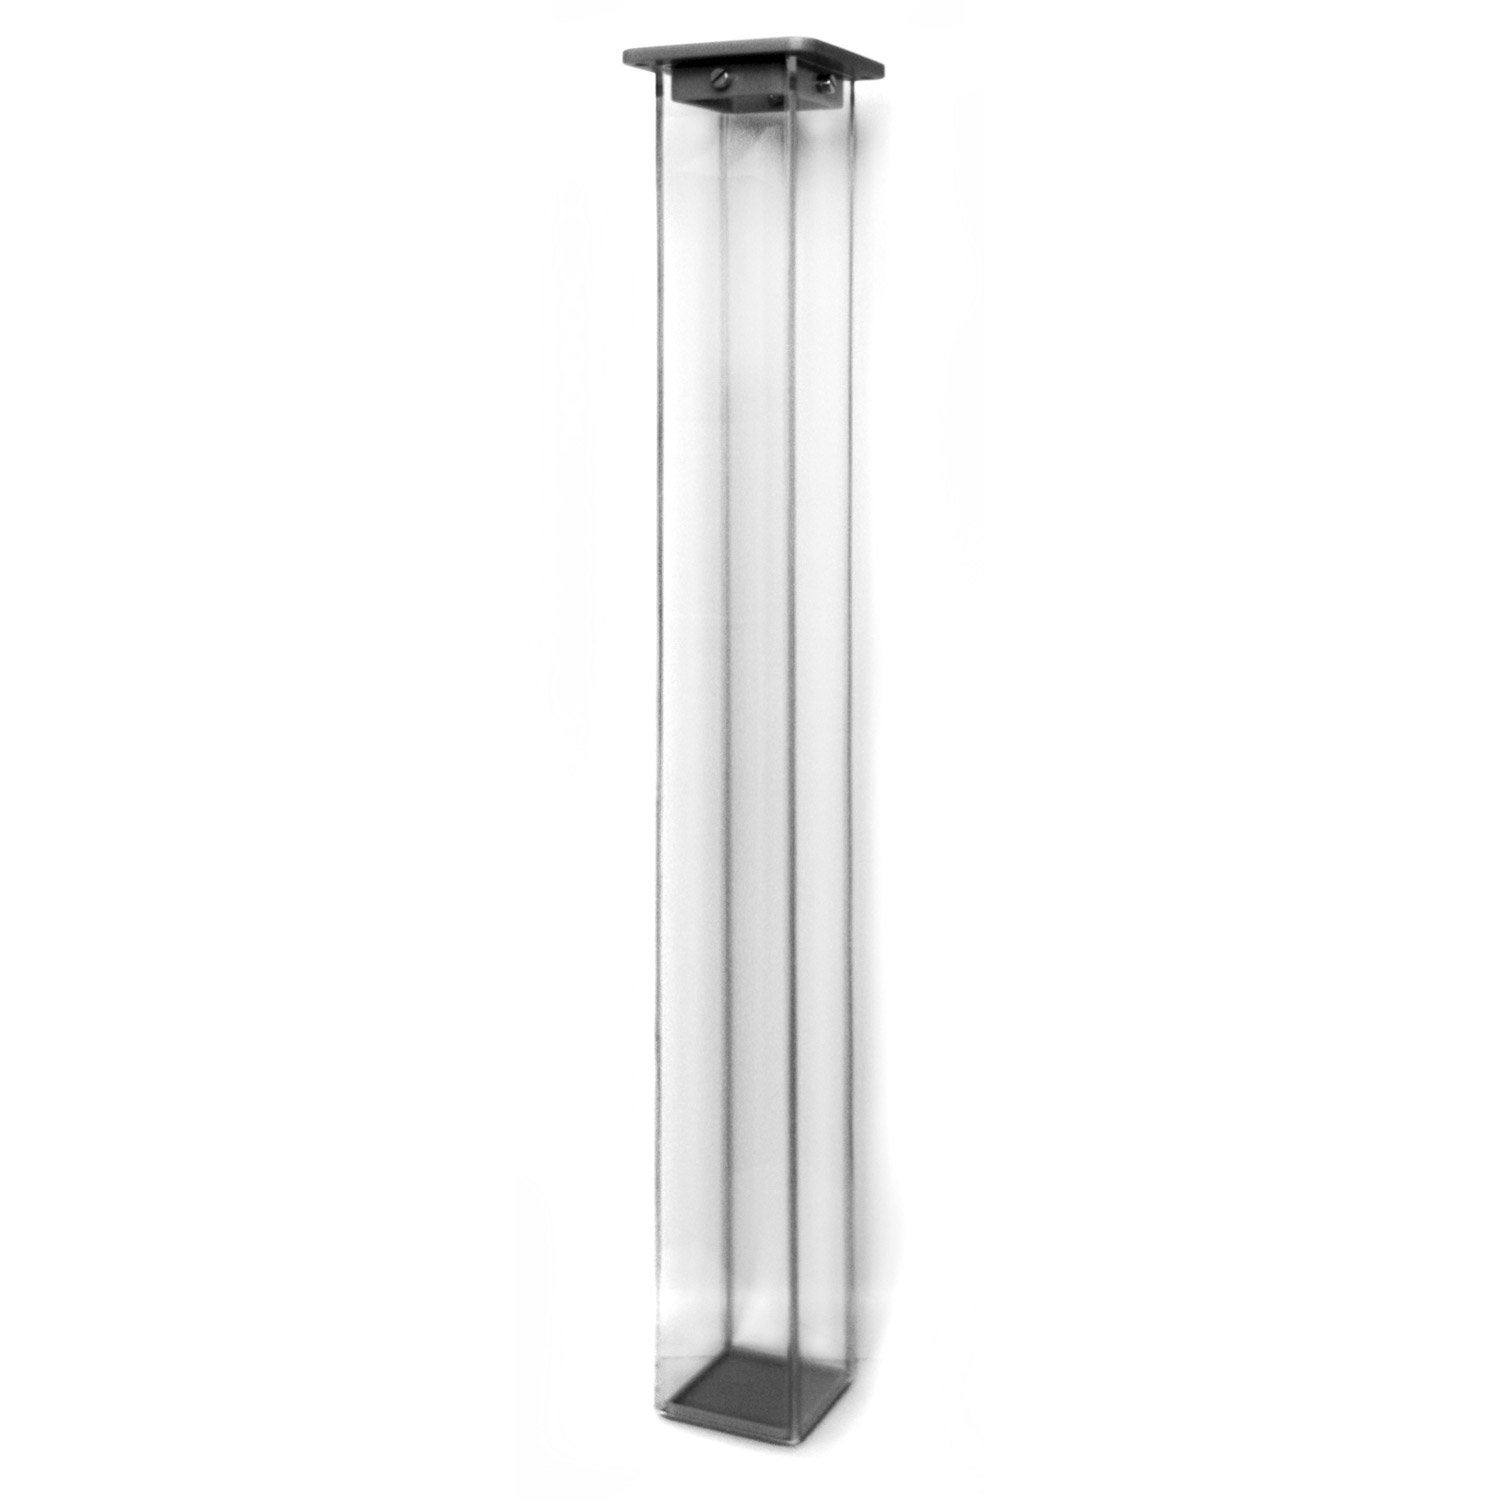 Pied de table carr fixe plastique brut transparent 70 cm leroy merlin - Leroy merlin pied de table ...